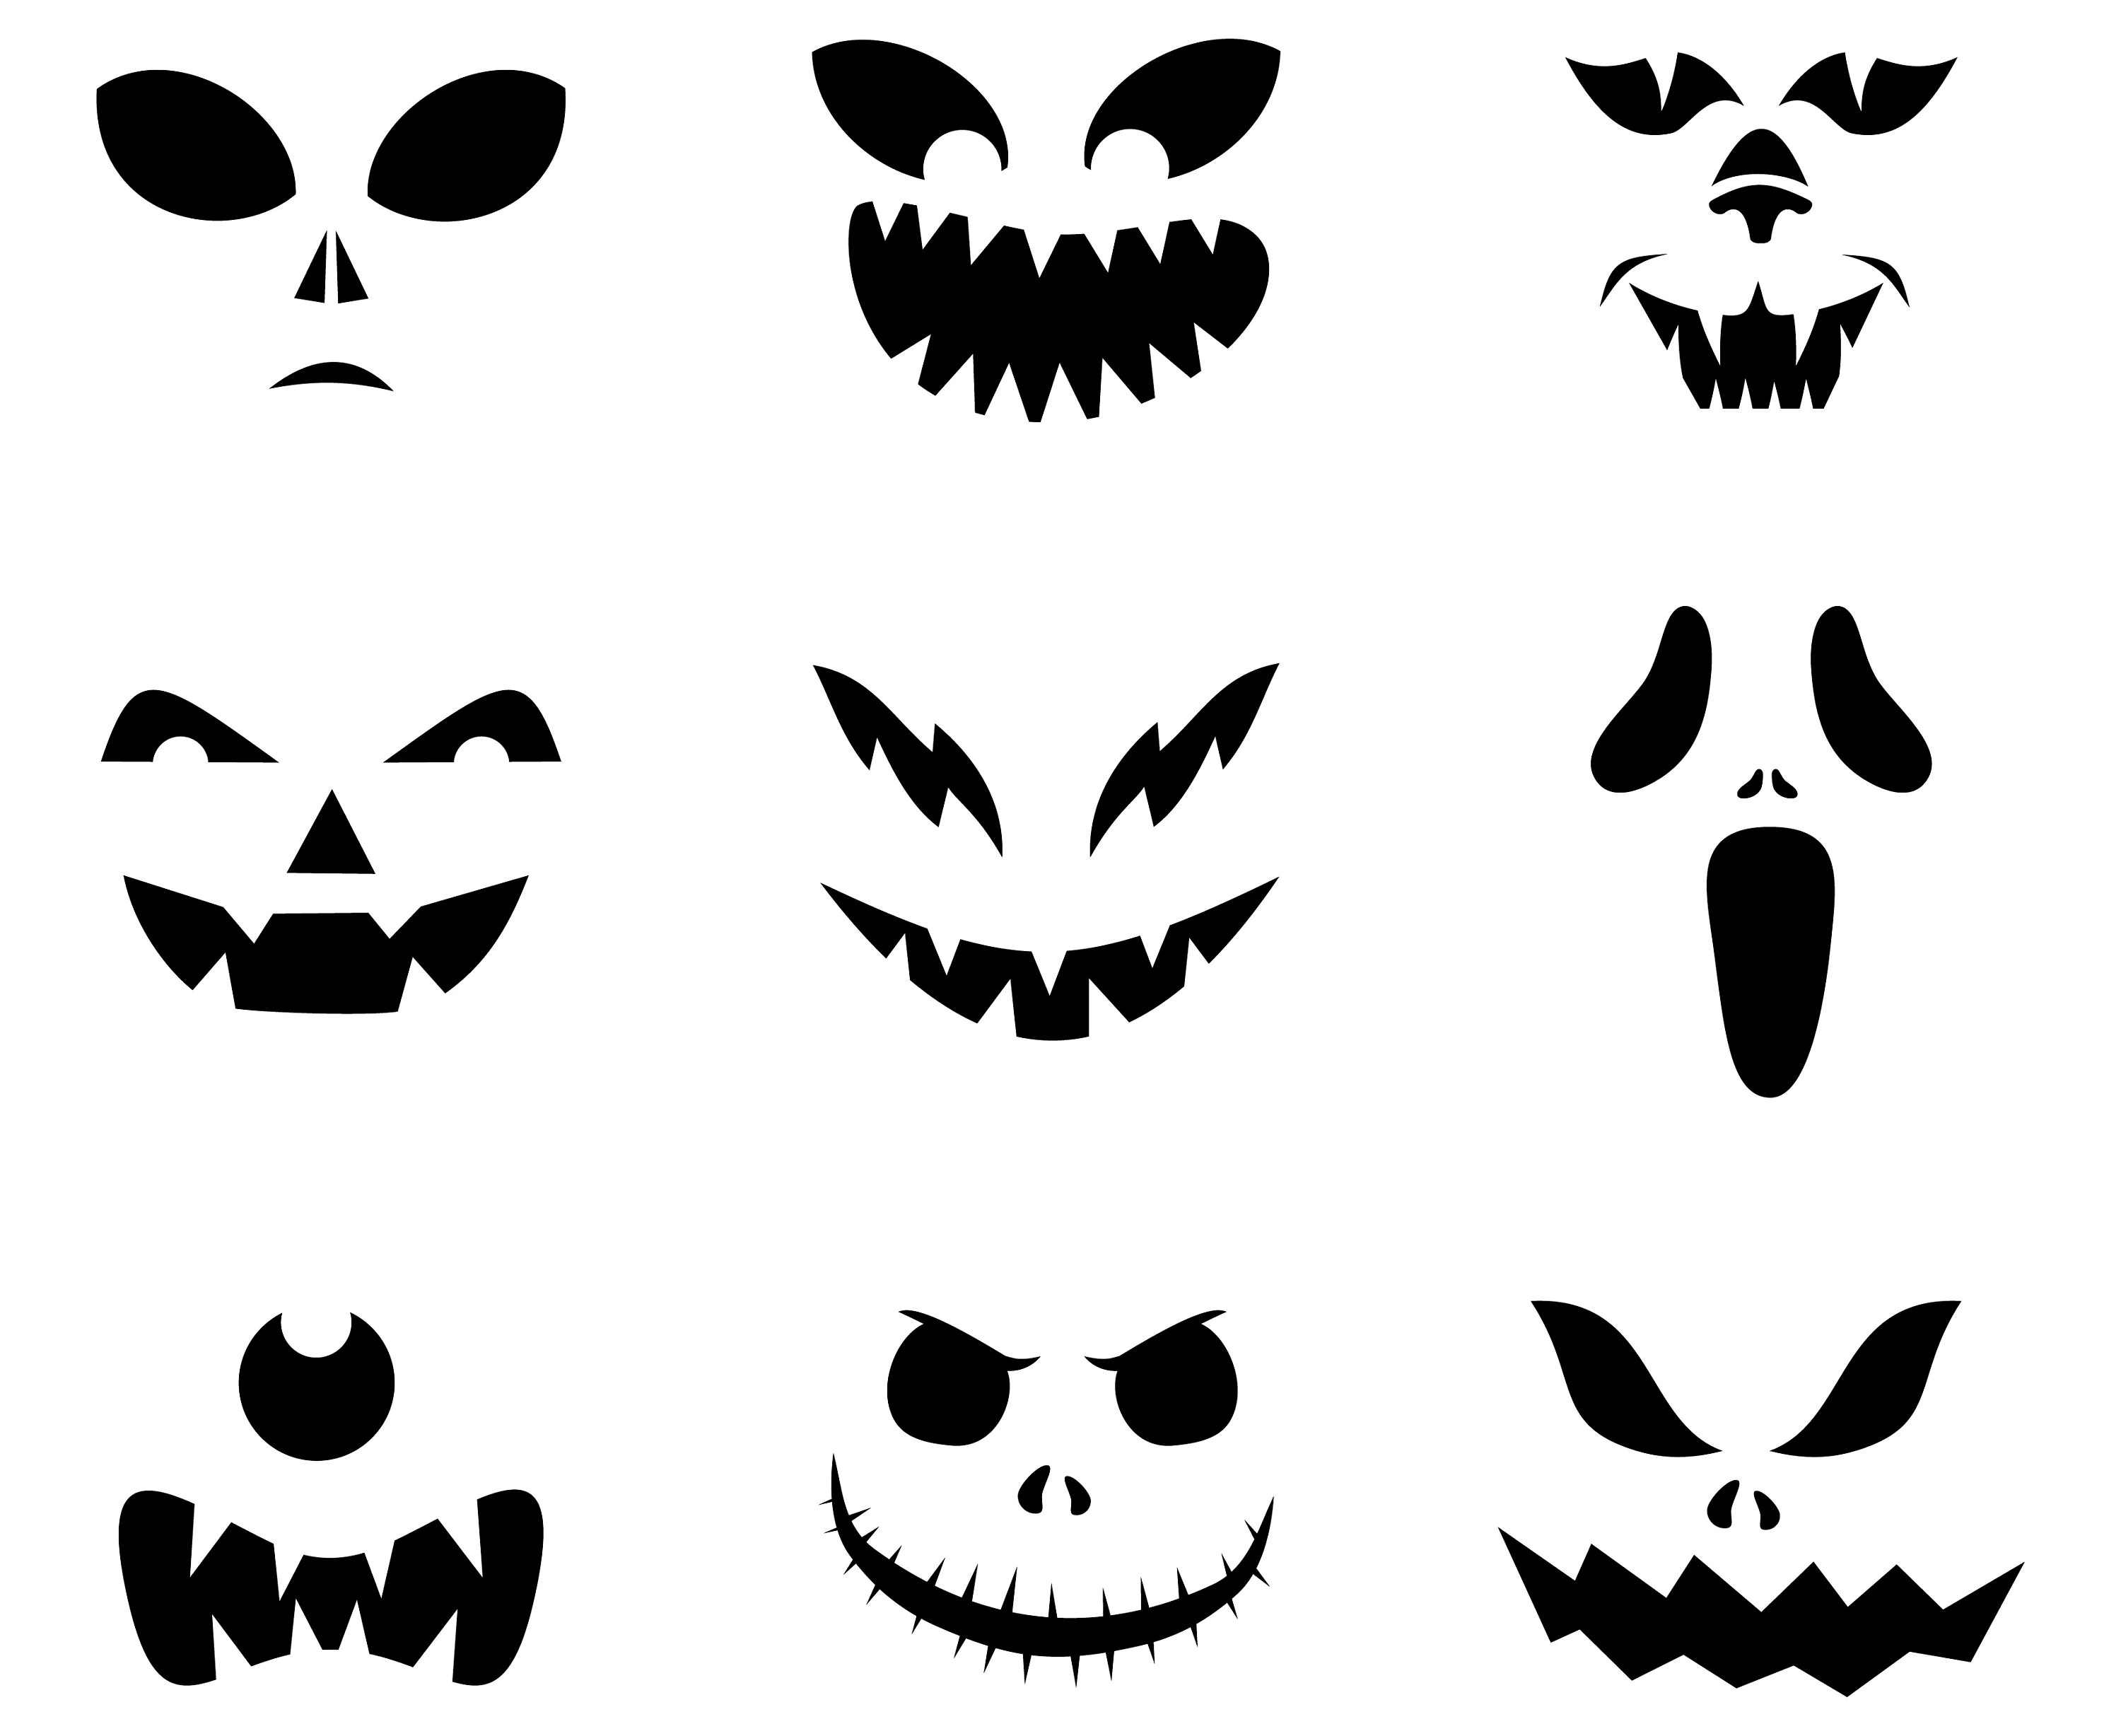 Halloween Scary Spooky Ghost Face Faces Pumpkin